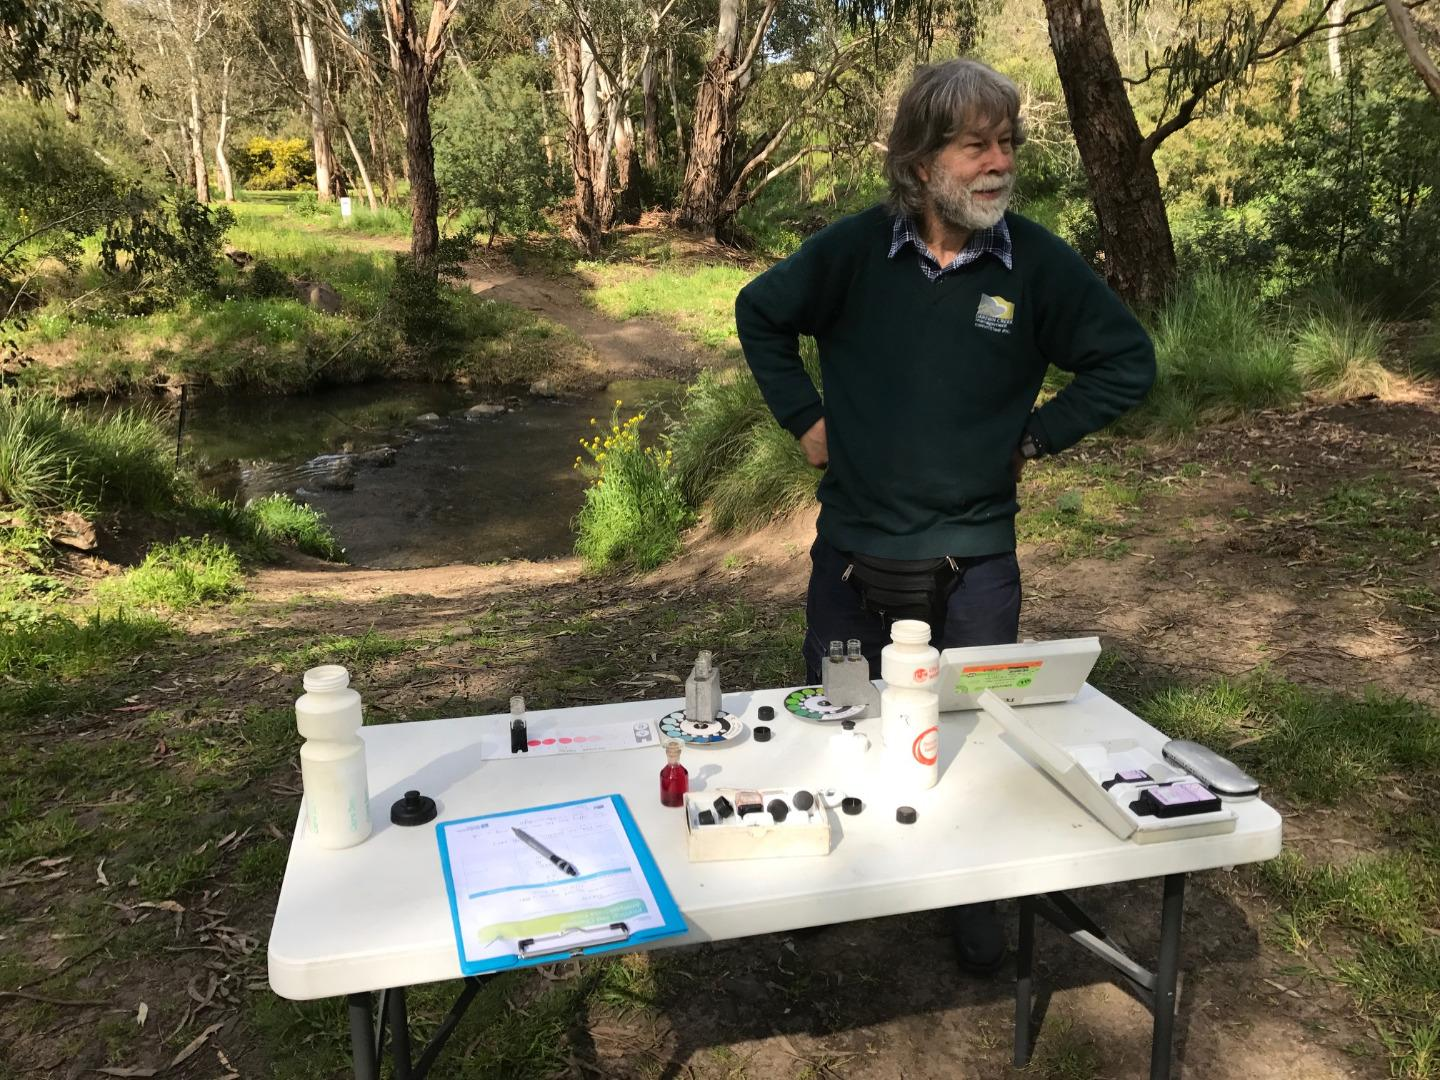 Possibly longtime WW monitor and Darebin Parklands volunteer dynamo Michael Mann's last time monitoring here, as he is moving away.